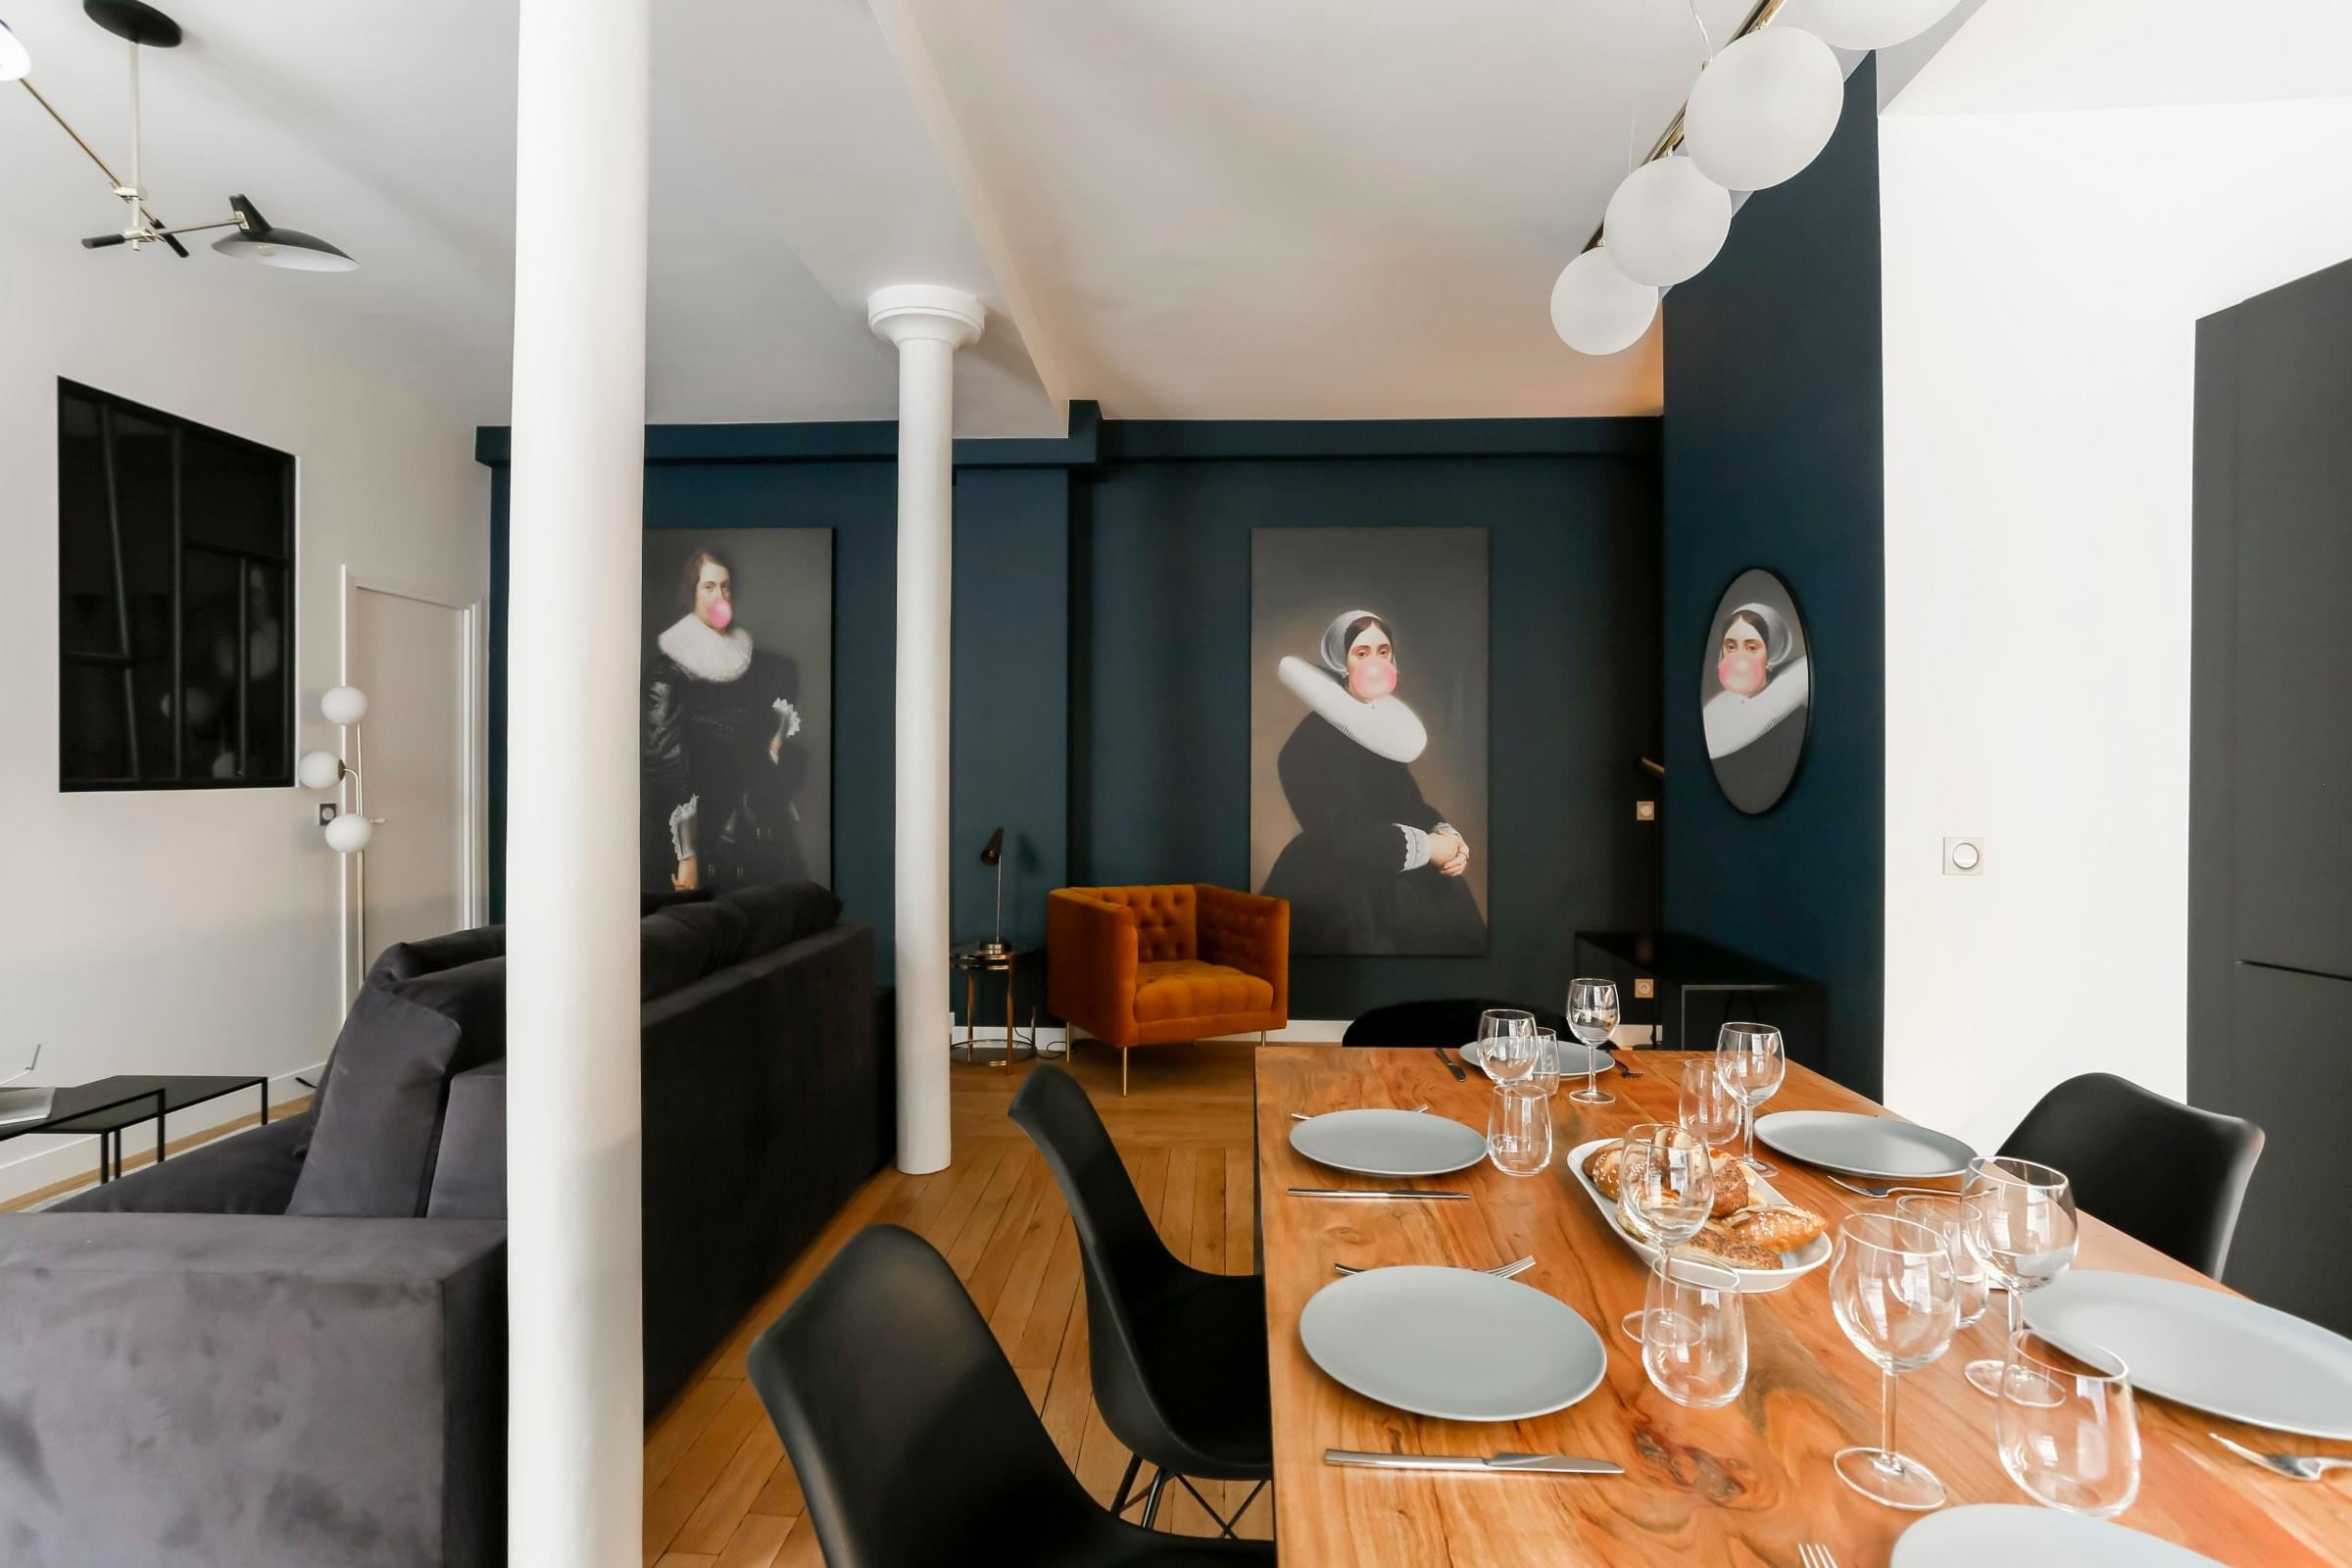 Property Image 2 - New and Stylish 2 bedroom, Palais Royal - Louvre